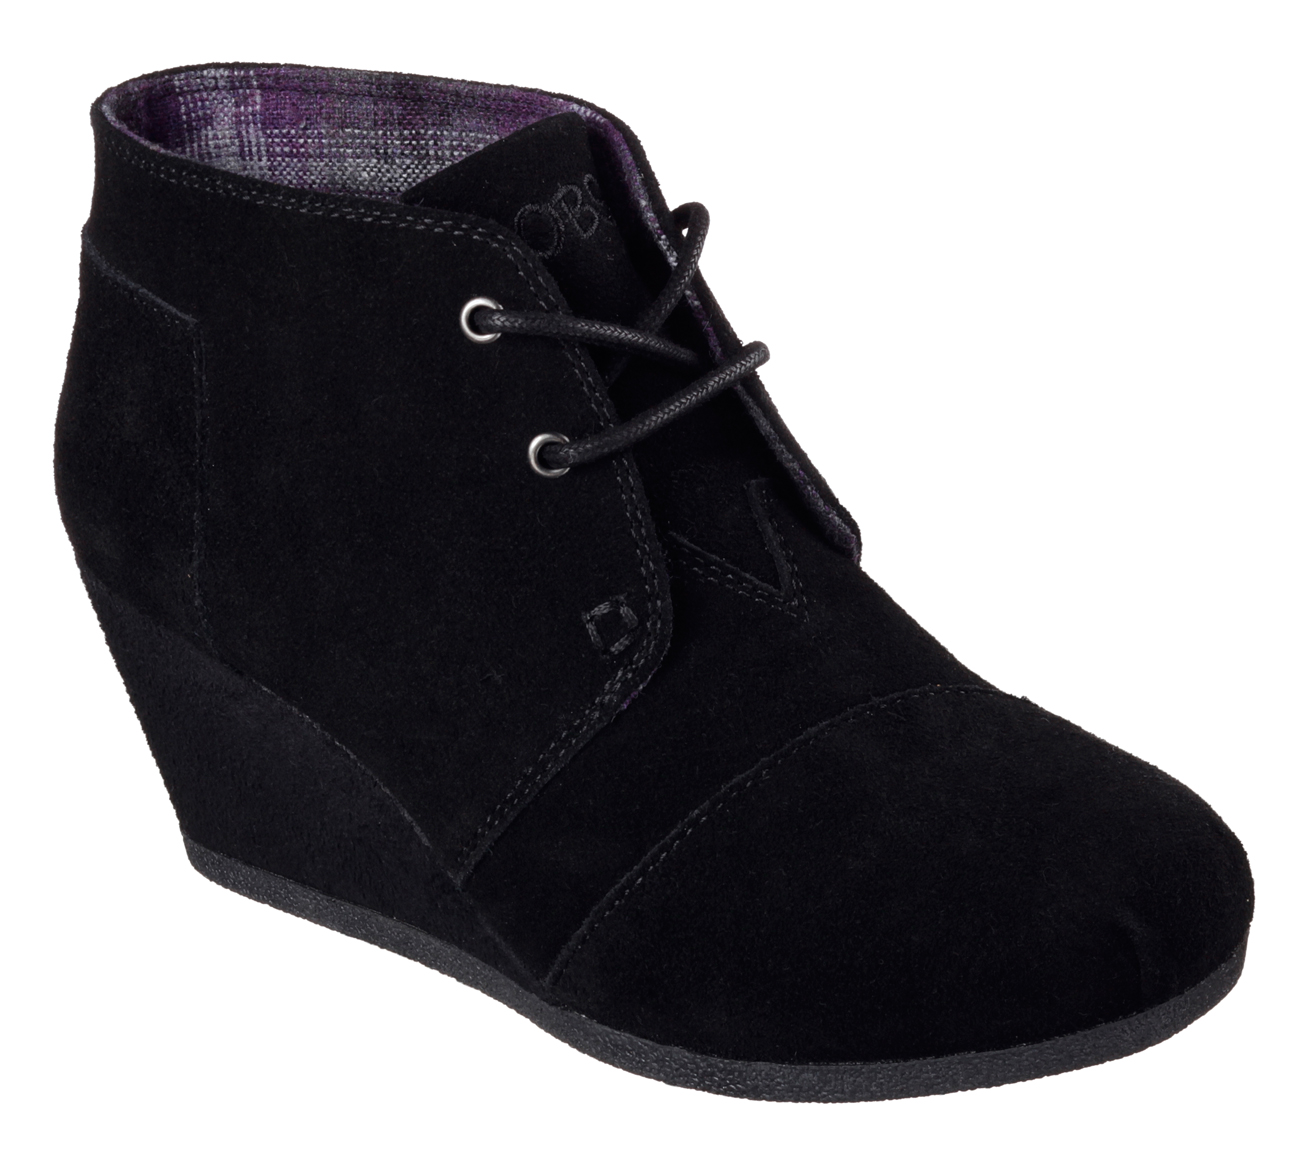 Buy SKECHERS Bobs High Notes - Behold BOBS Shoes only $60.00